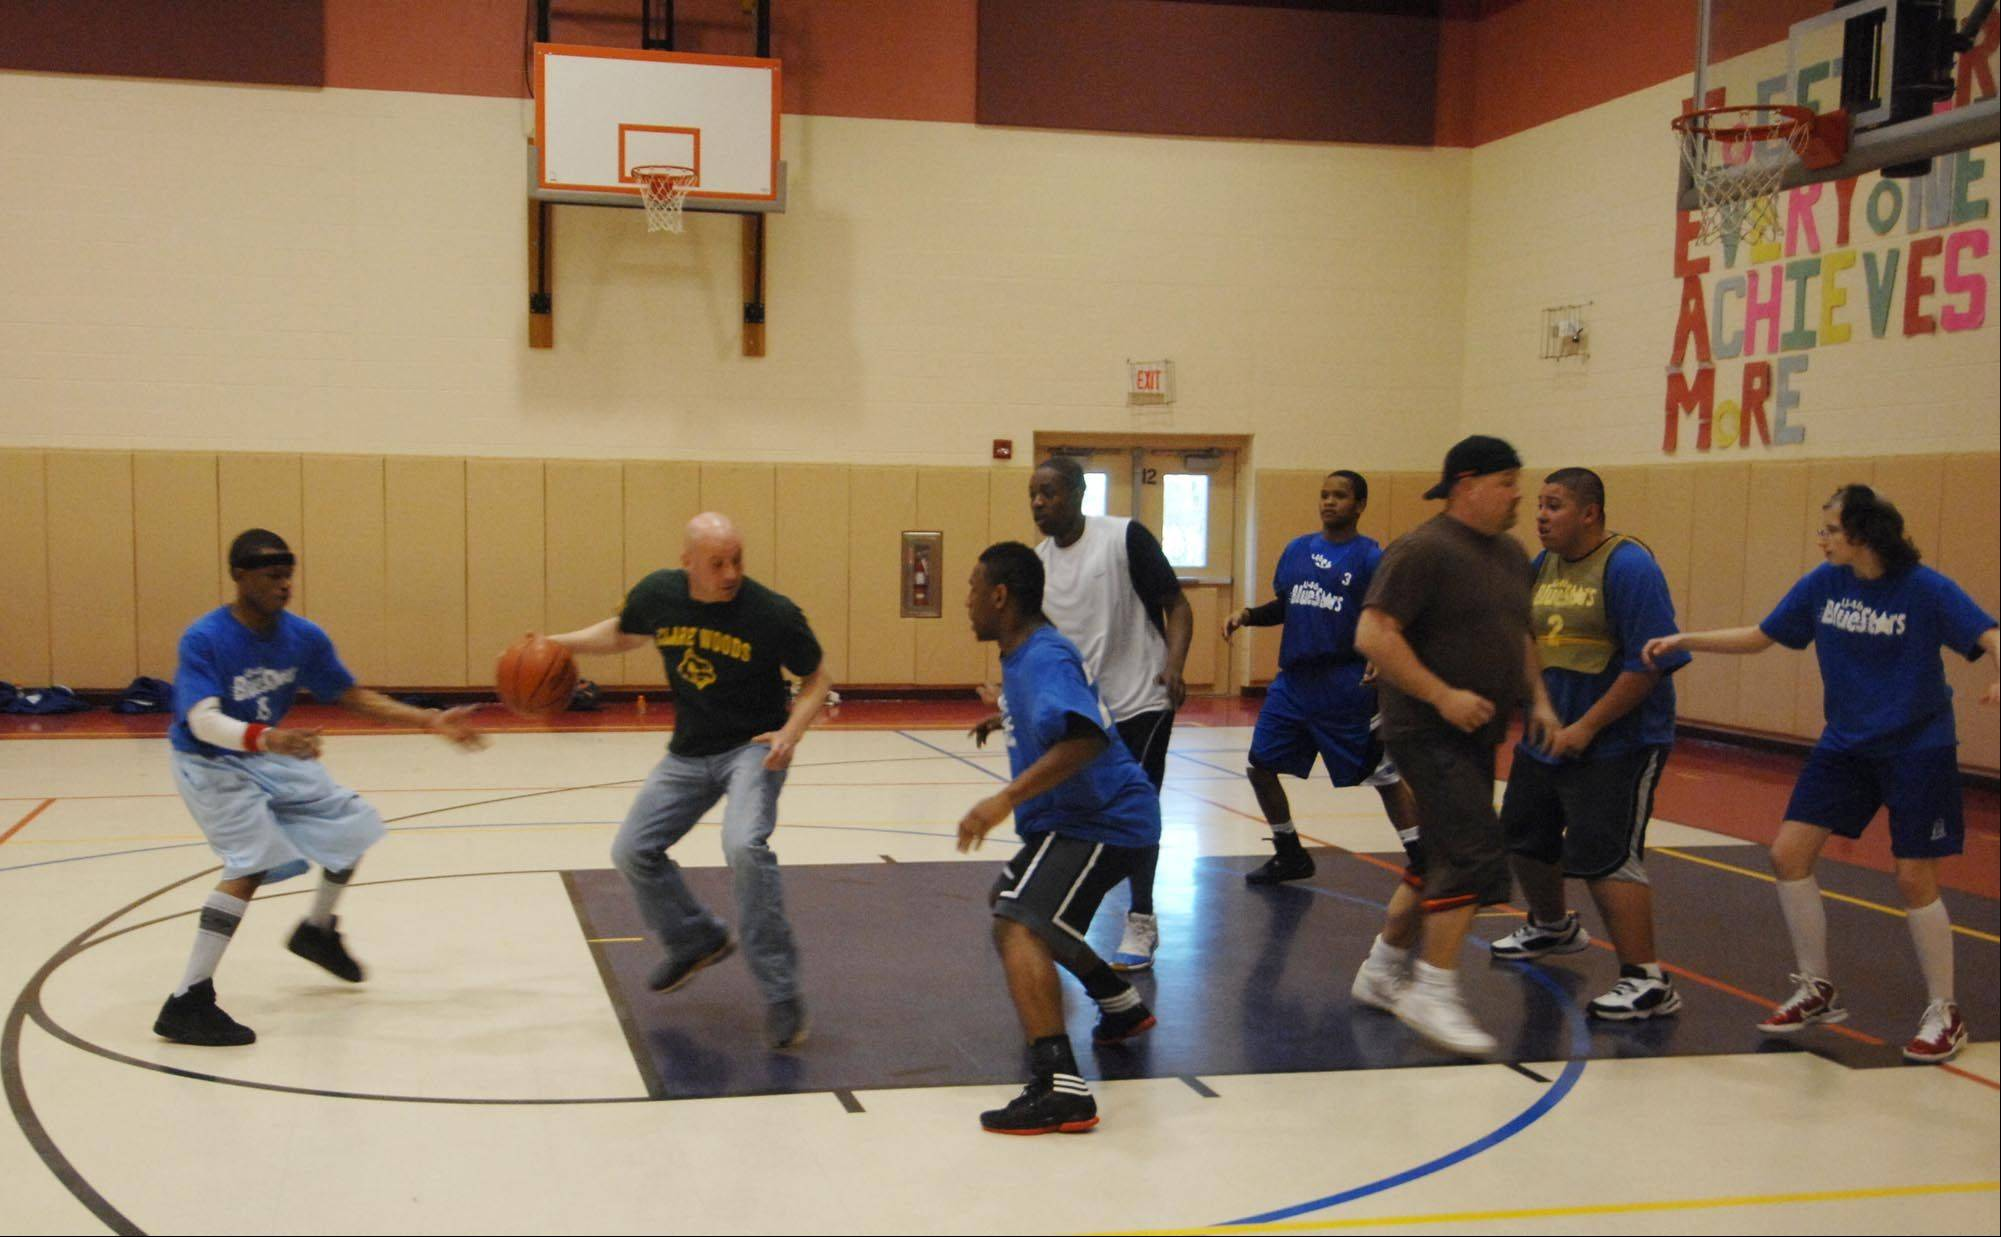 Coach Mike PaPrairie leads the U46 BlueStars High School A team Special Olympics practice.